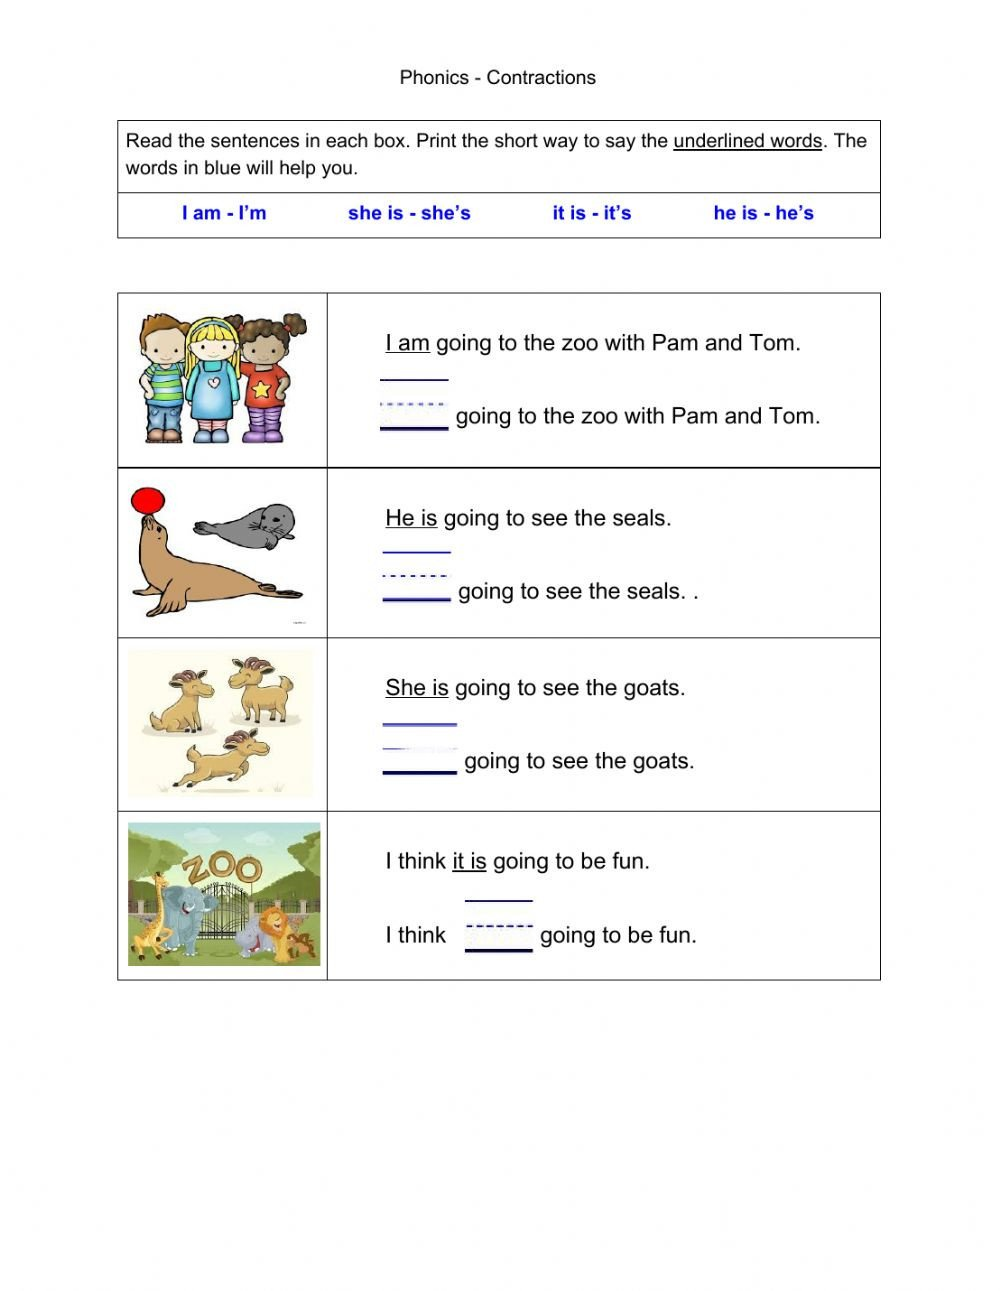 Spanish Contractions Worksheet Phonics Contractions Part 1 S Interactive Worksheet